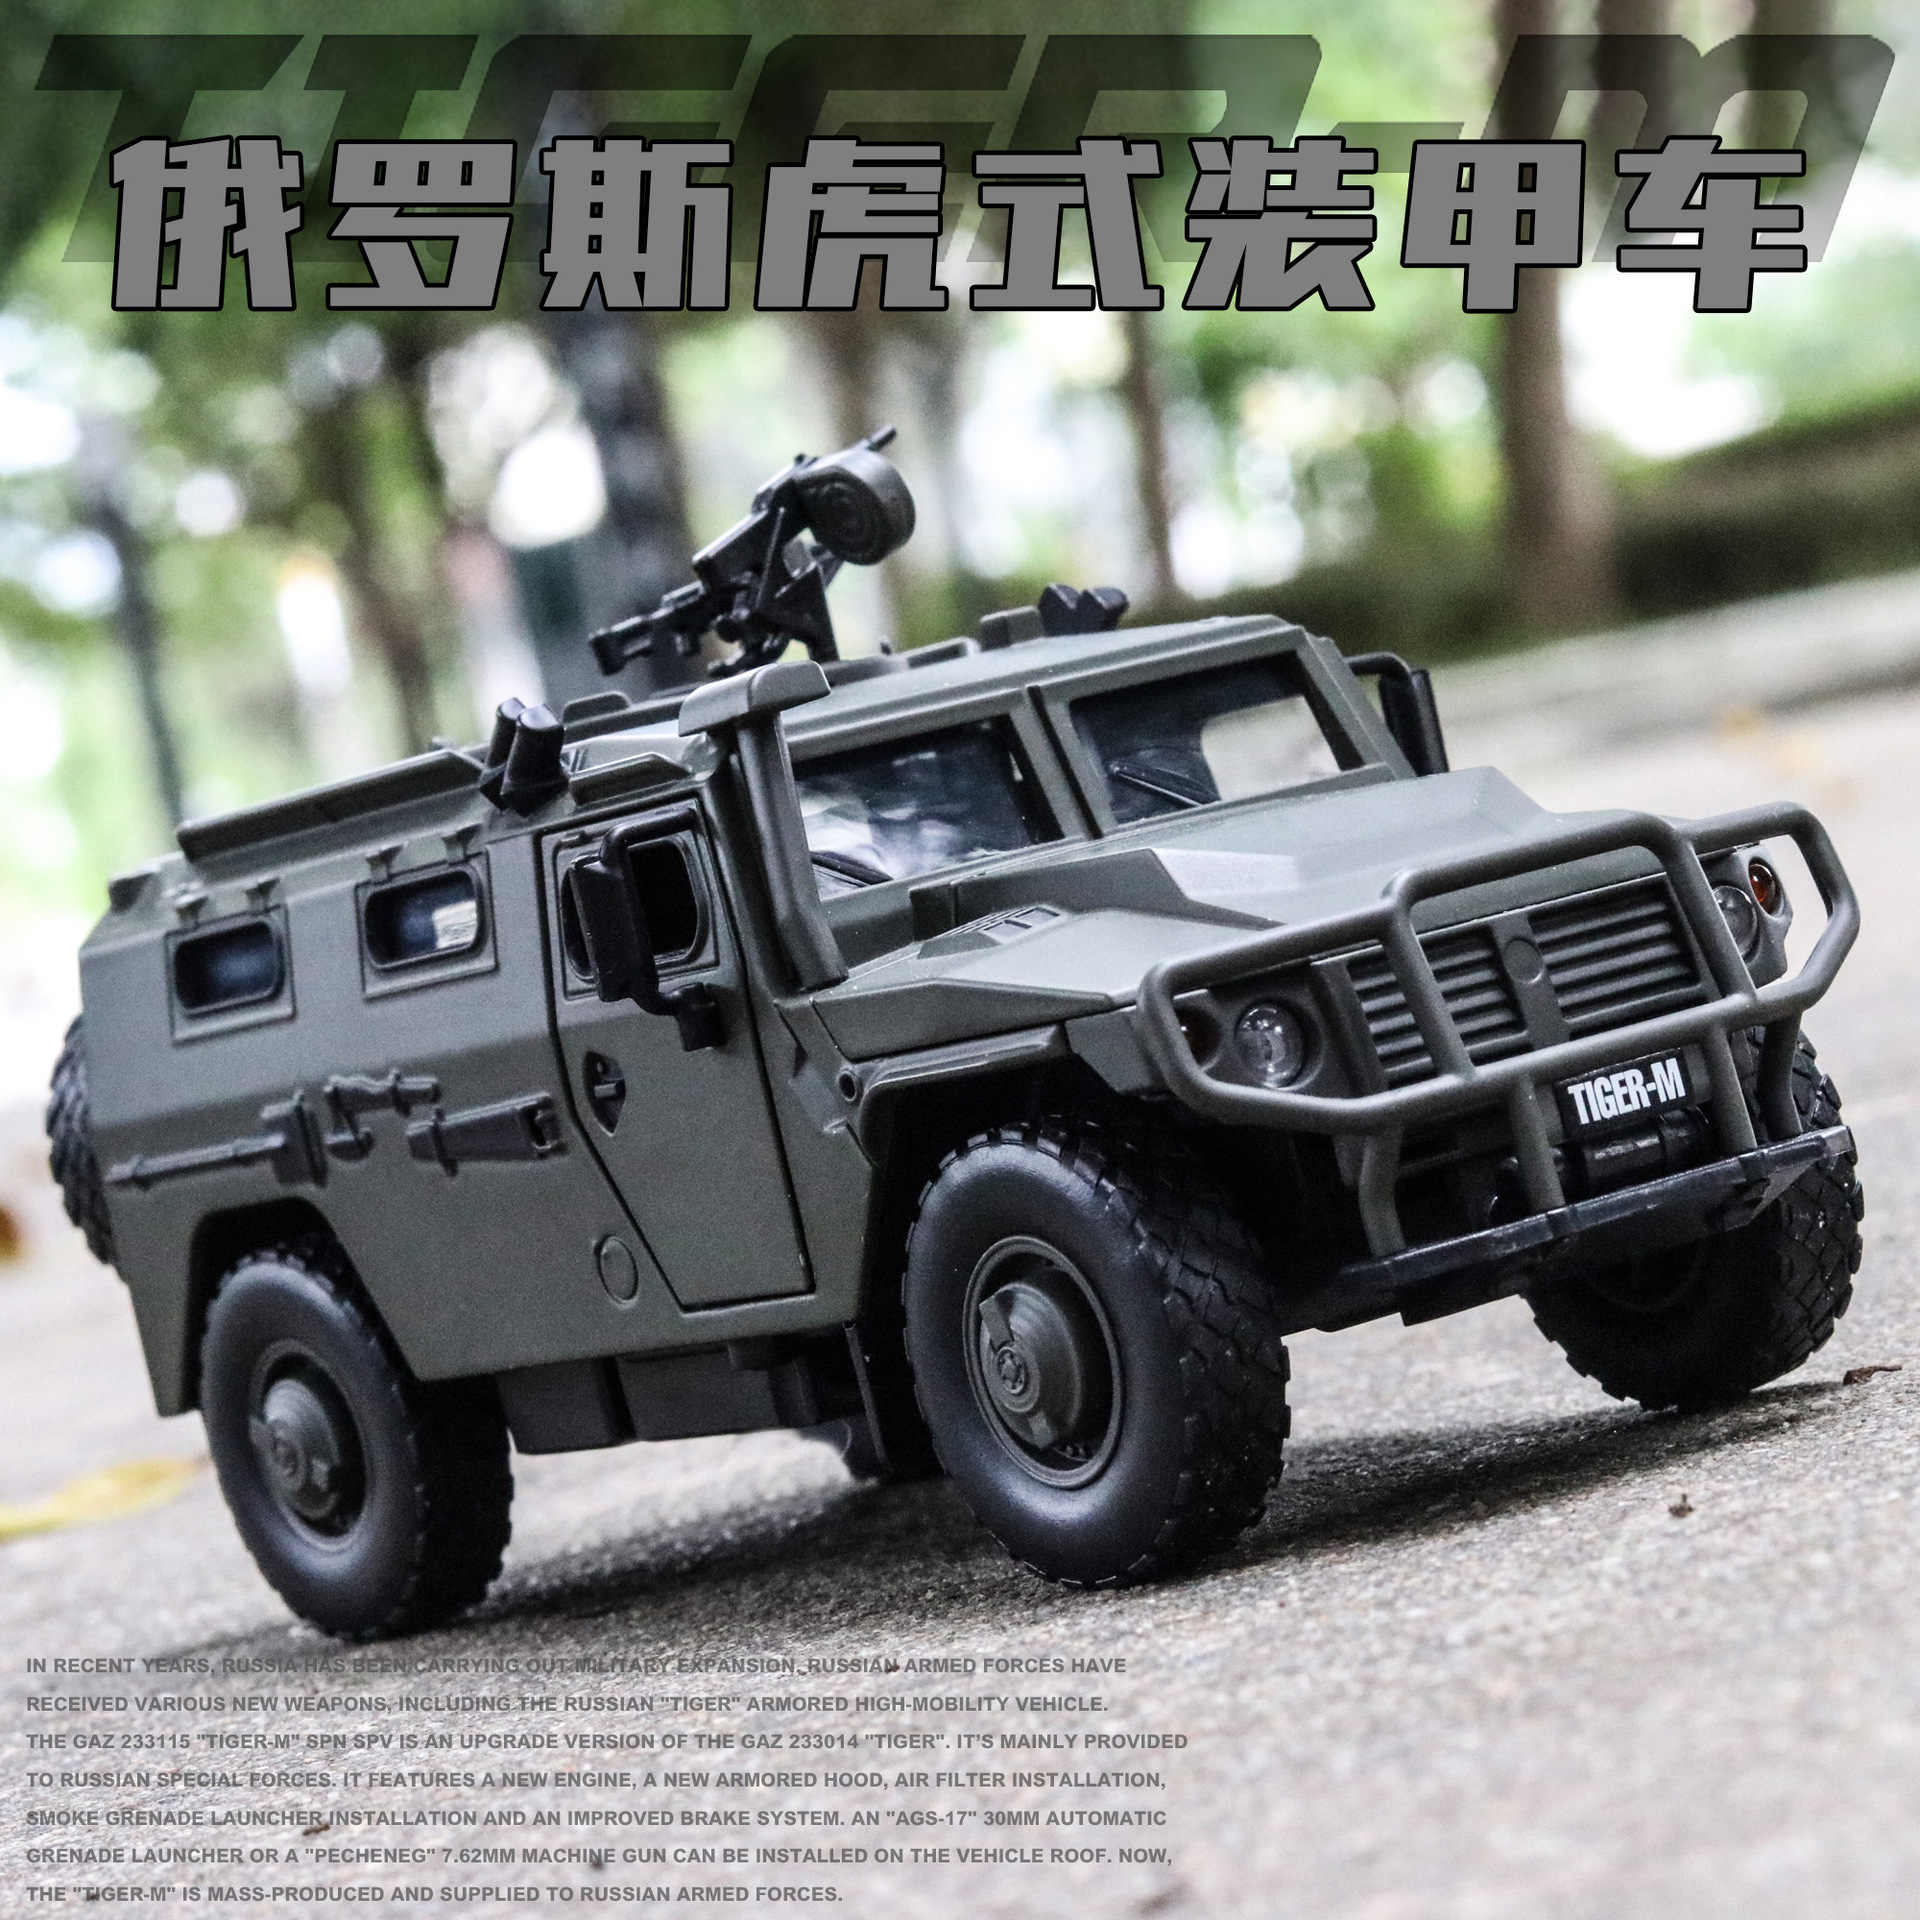 1:32 high simulation SWAT Russian military tiger-type explosion-proof armored vehicle with sound and light door alloy toy model